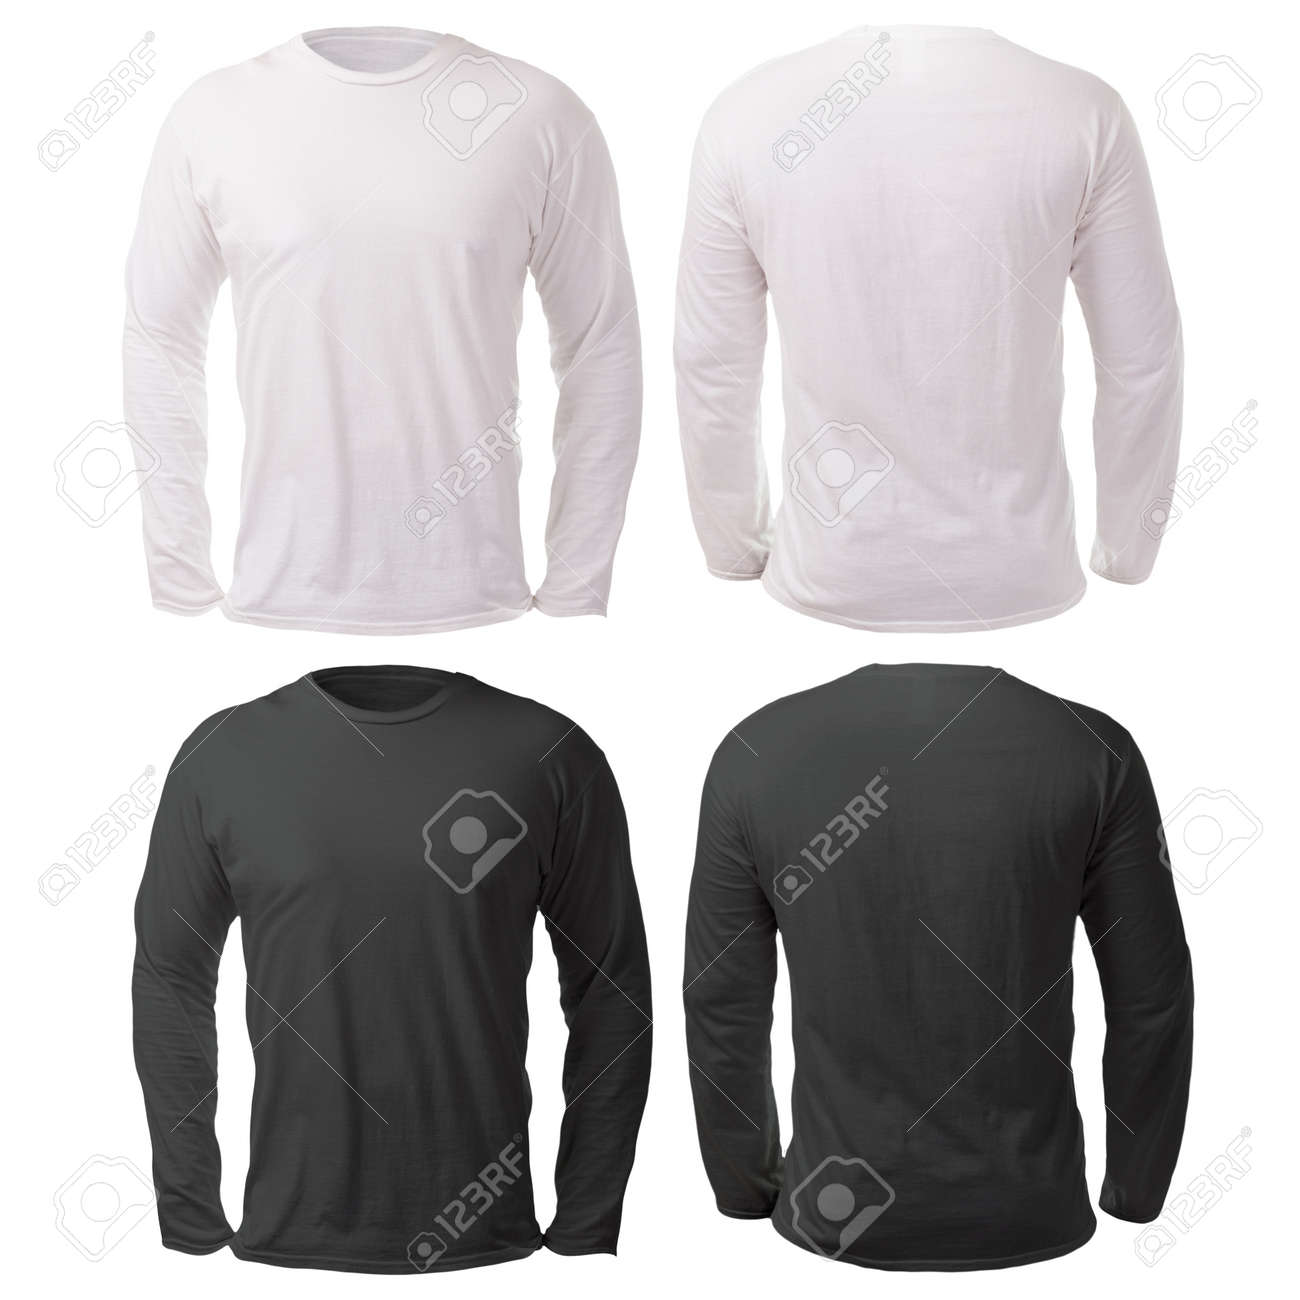 Blank long sleeved shirt mock up template, front and back view,